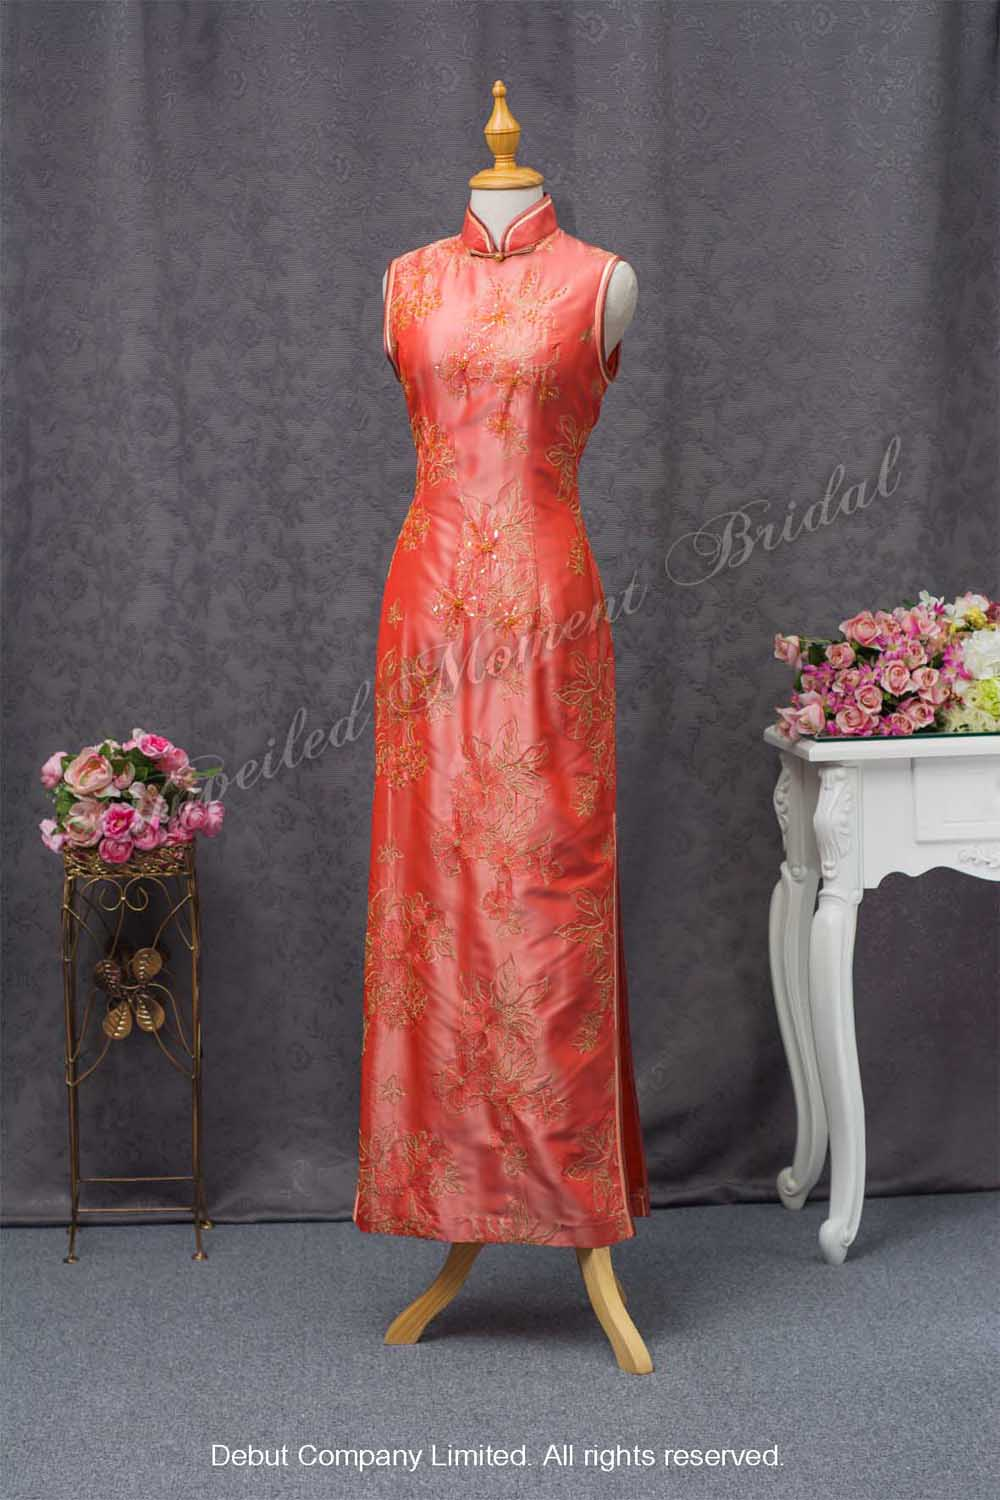 High collar, sleeveless qipao with side slits on both sides, beaded and decorative lace. Colour: Chinese red. 企領無袖繡花側叉旗袍橙紅色媽咪衫